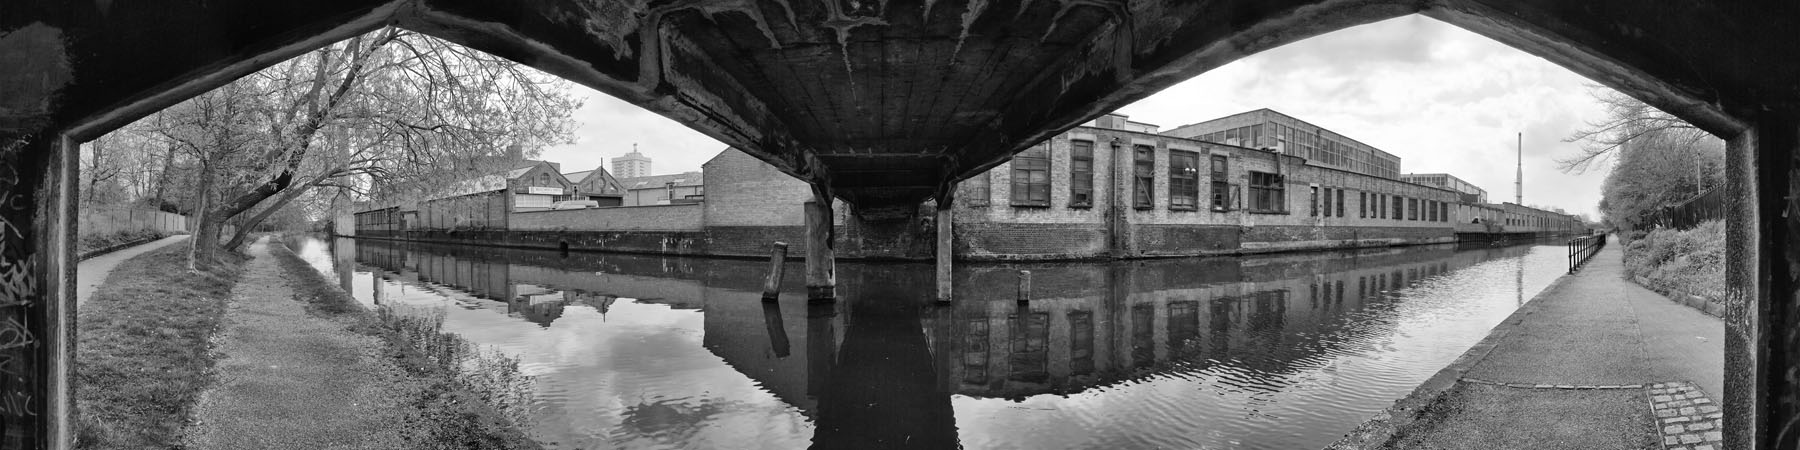 Canal bridge in Leicester